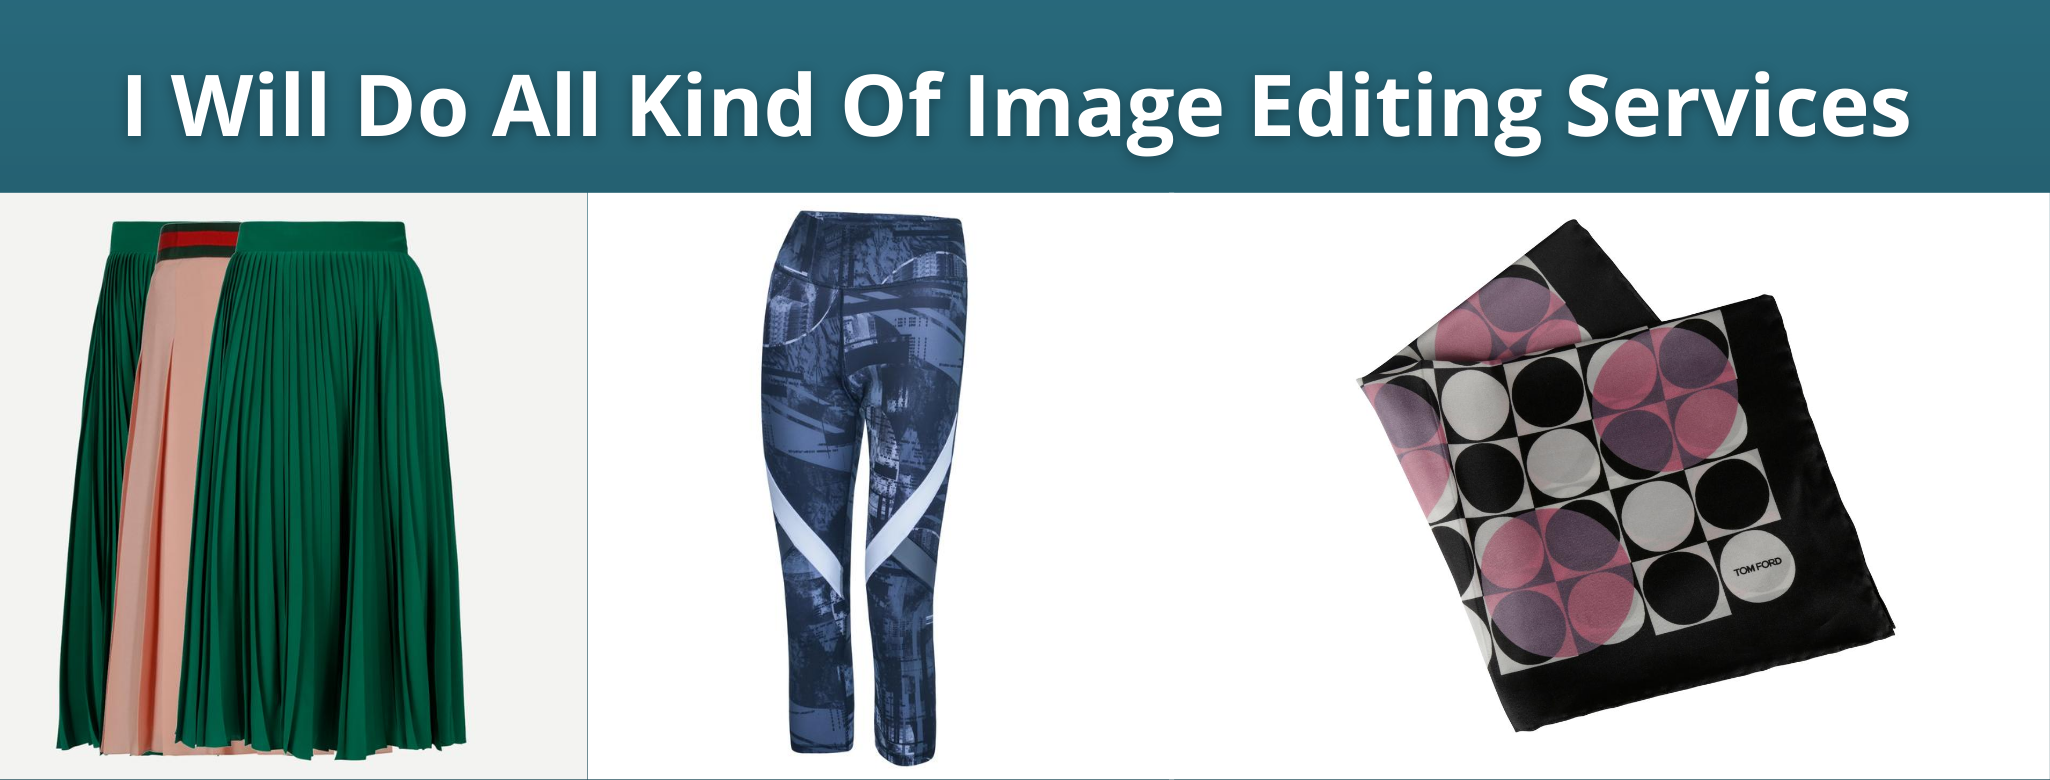 I Will Do All Kind Of Image Editing Services that would be help your business